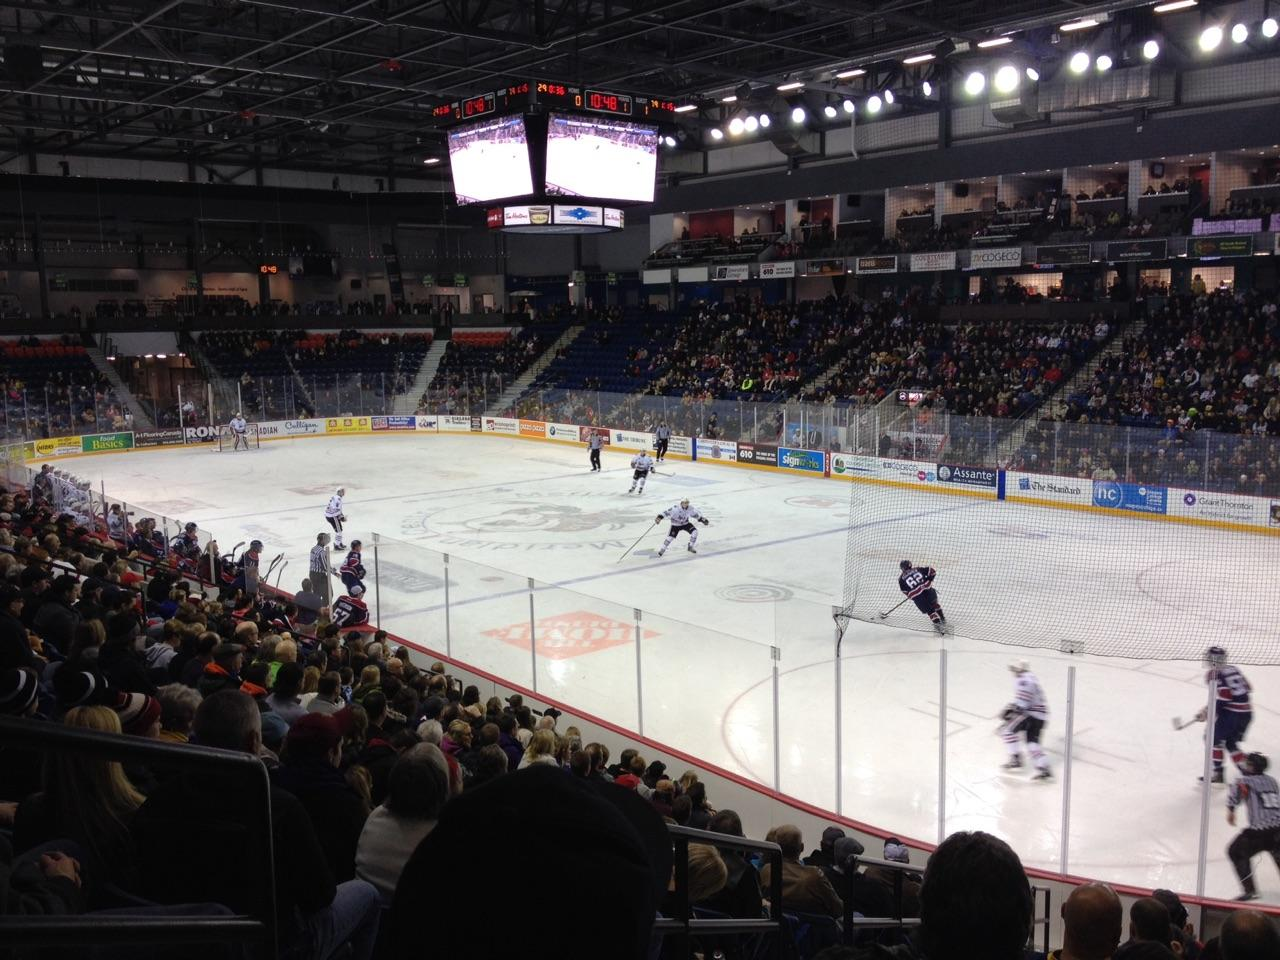 Meridian Centre Section 102 Row P Seat 26